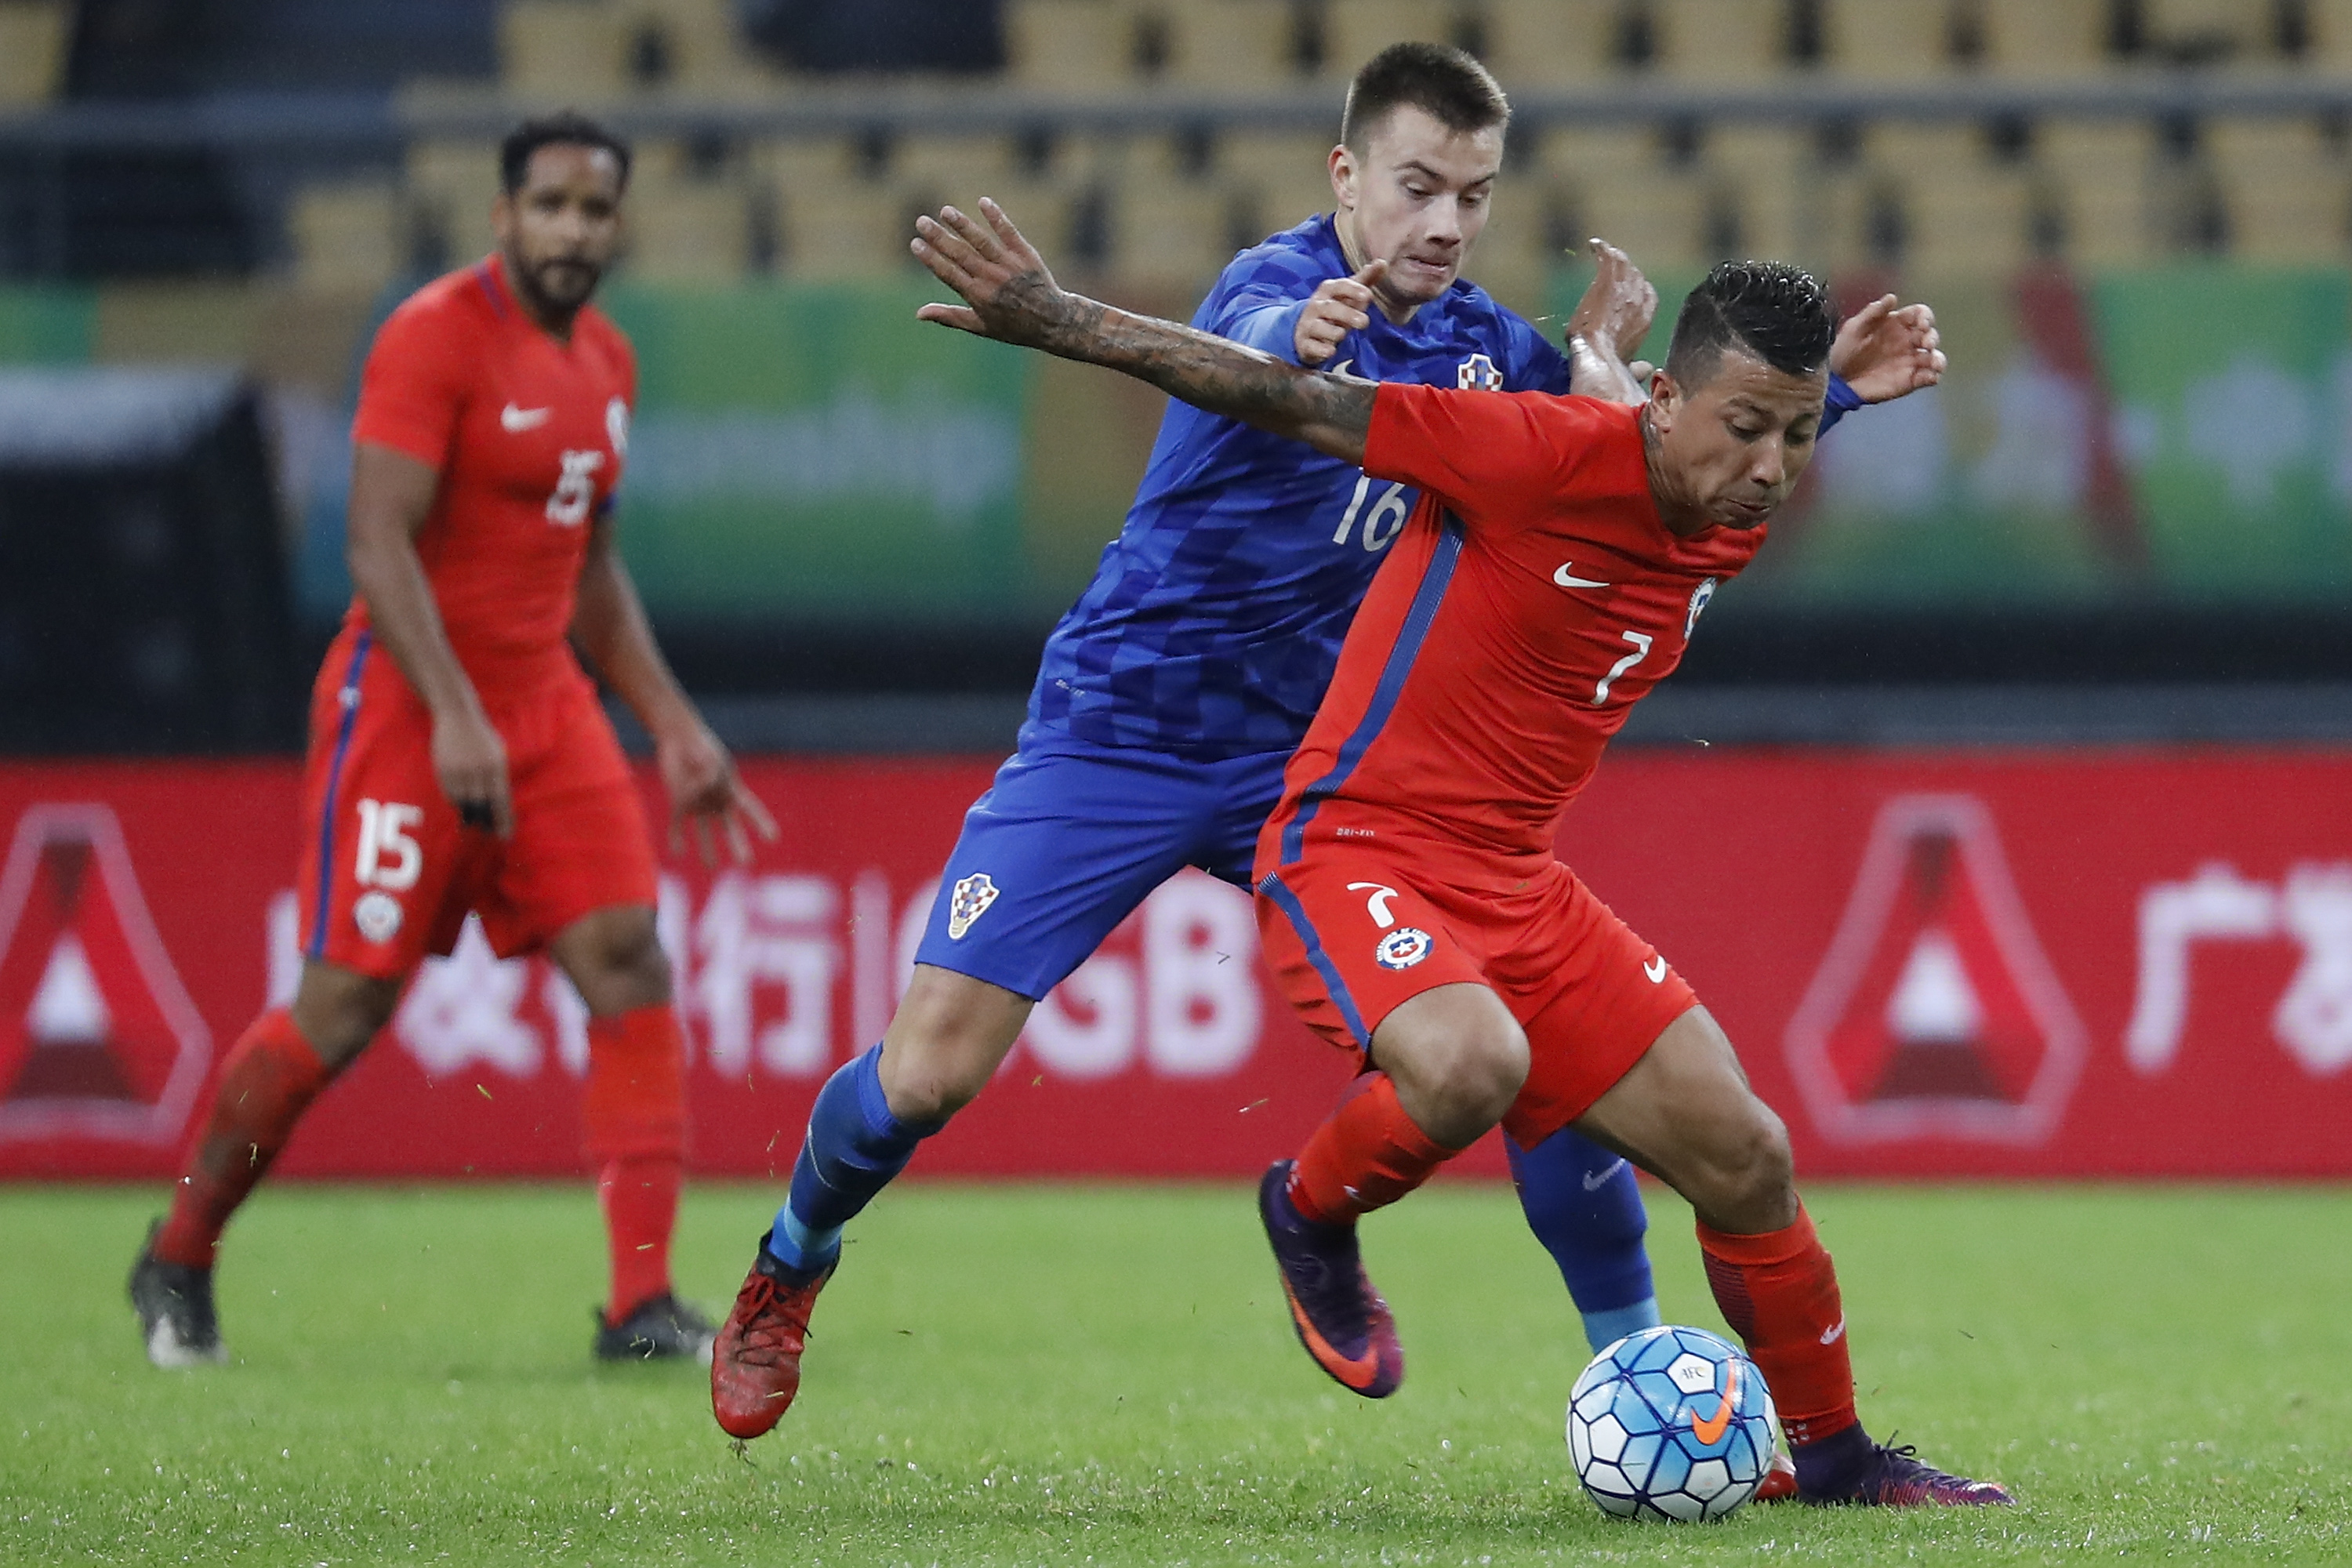 NANNING, CHINA - JANUARY 11:  Leonardo Valencia (R) of Chile challenges  Fran Tudor of Croatia during the 2017 Gree China Cup International Football Championship match between Croatia and Chile at Guangxi Sports Center on January 11, 2017 in Nanning, China.  (Photo by Lintao Zhang/Getty Images)